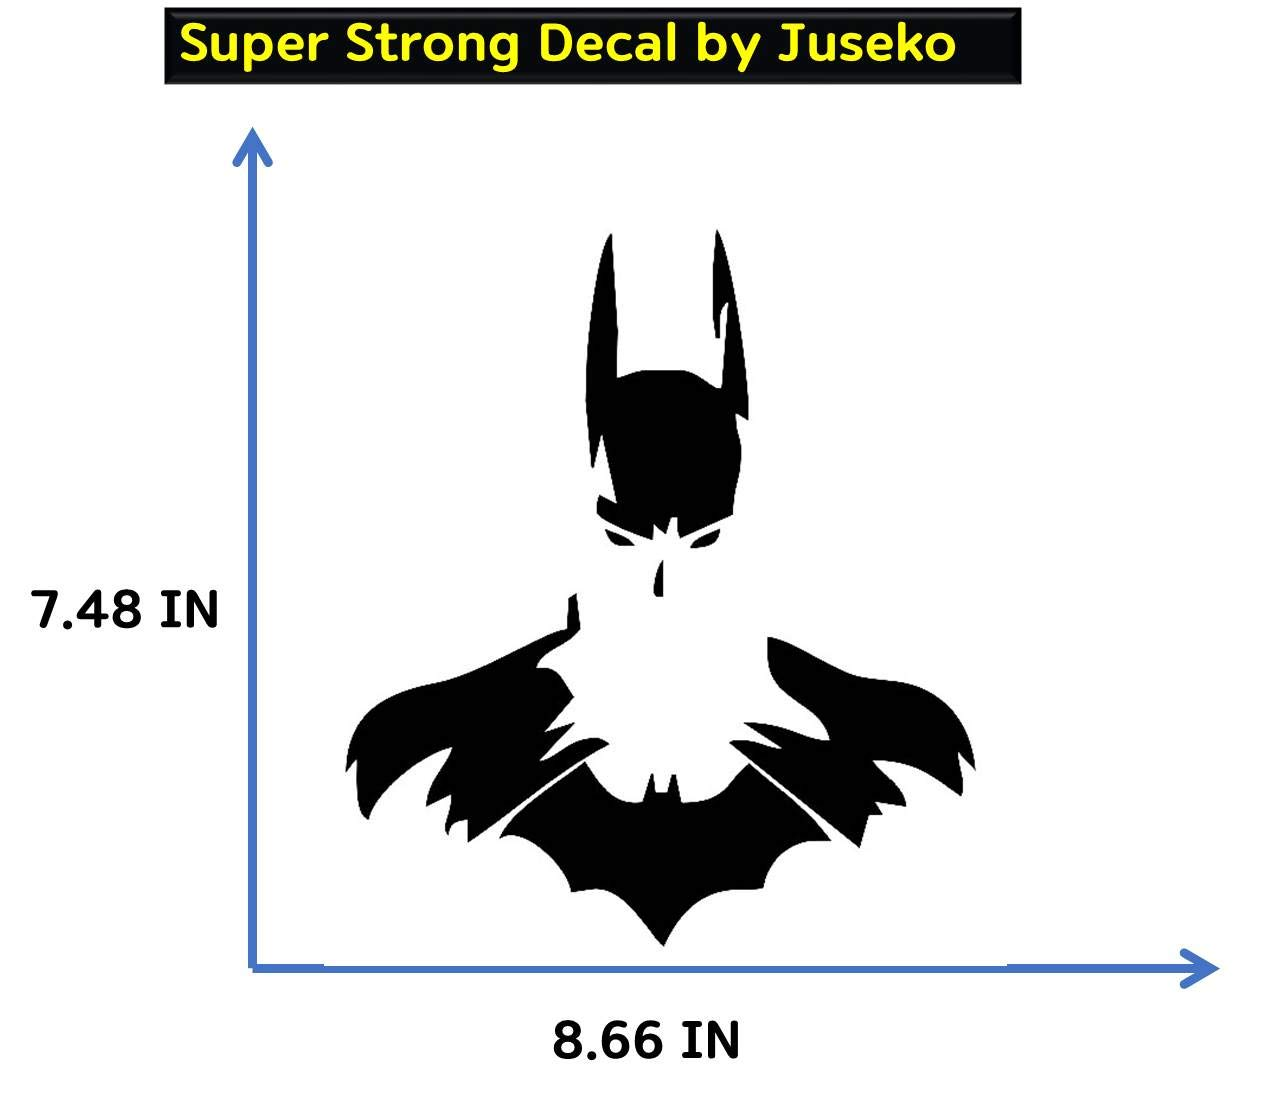 Decal batman dc man wei bruce wayne car back window affixed to body stickers hollowed out reflective waterproof ipad iphone macbook laptop skateboard